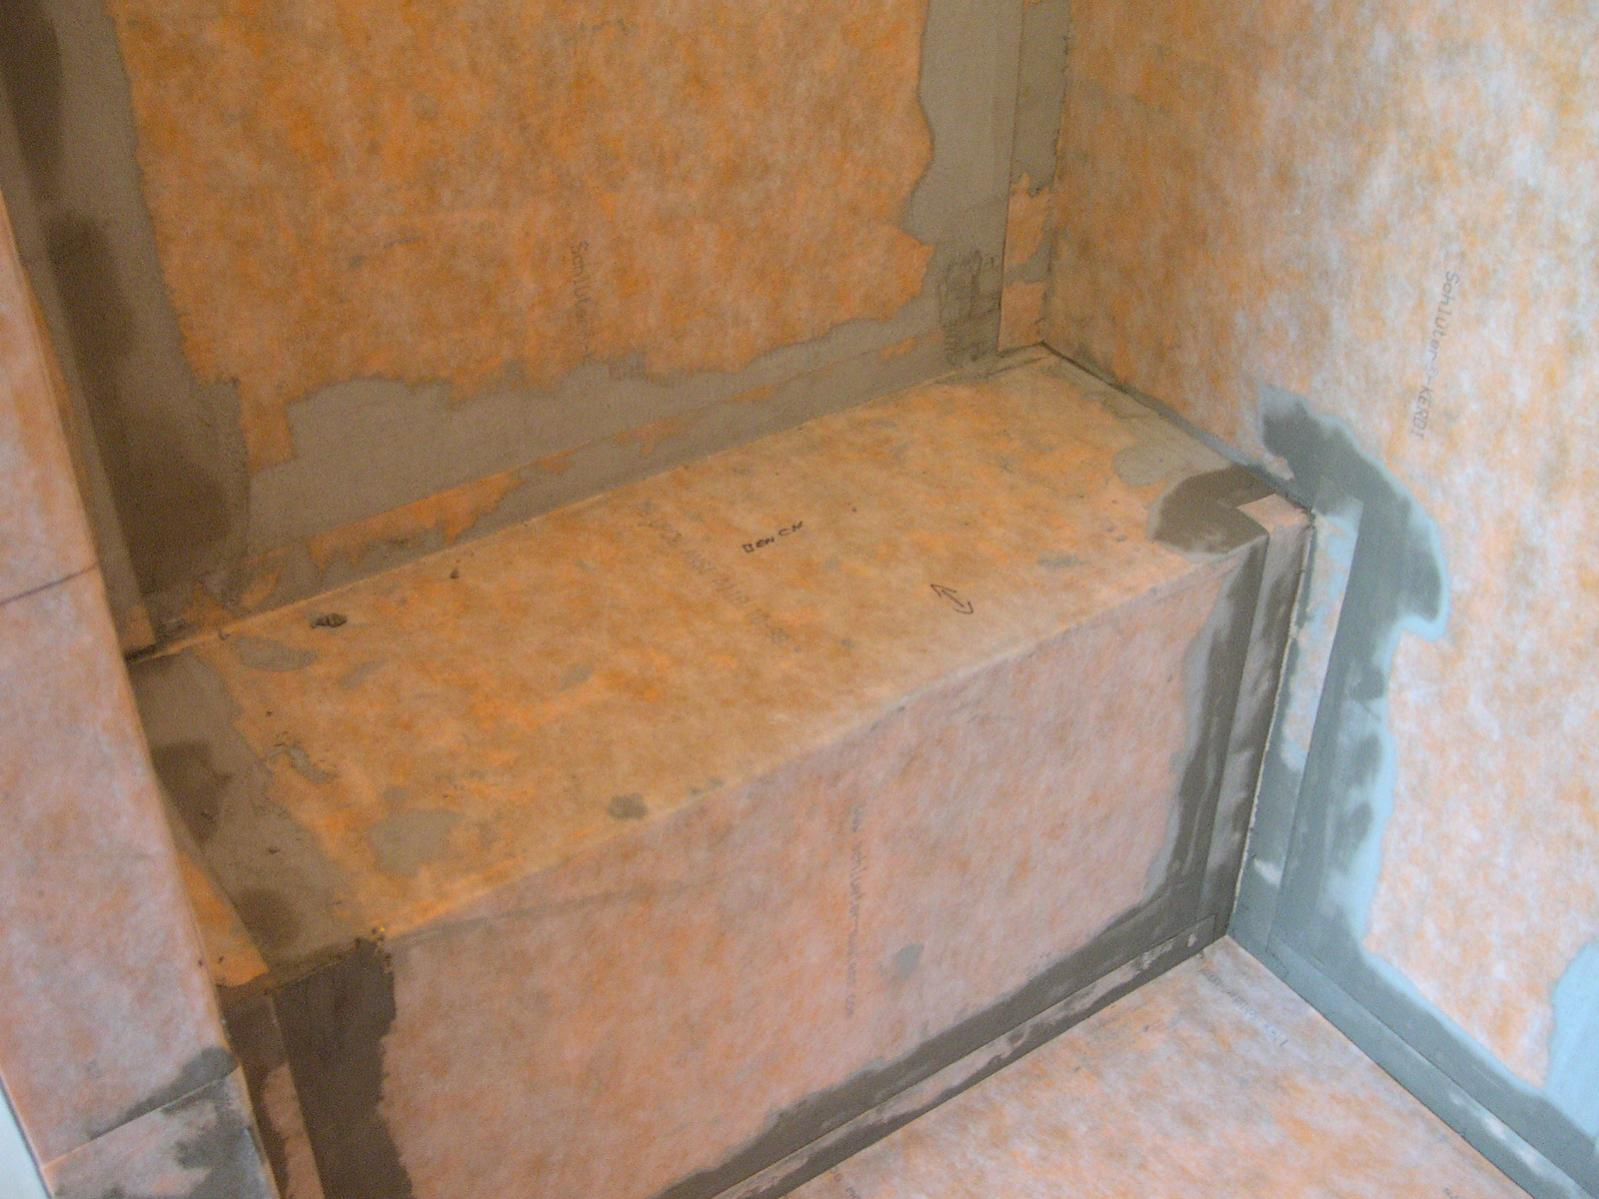 Building A Shower Bench When Using Backer Board On Walls Tiling Contractor Talk